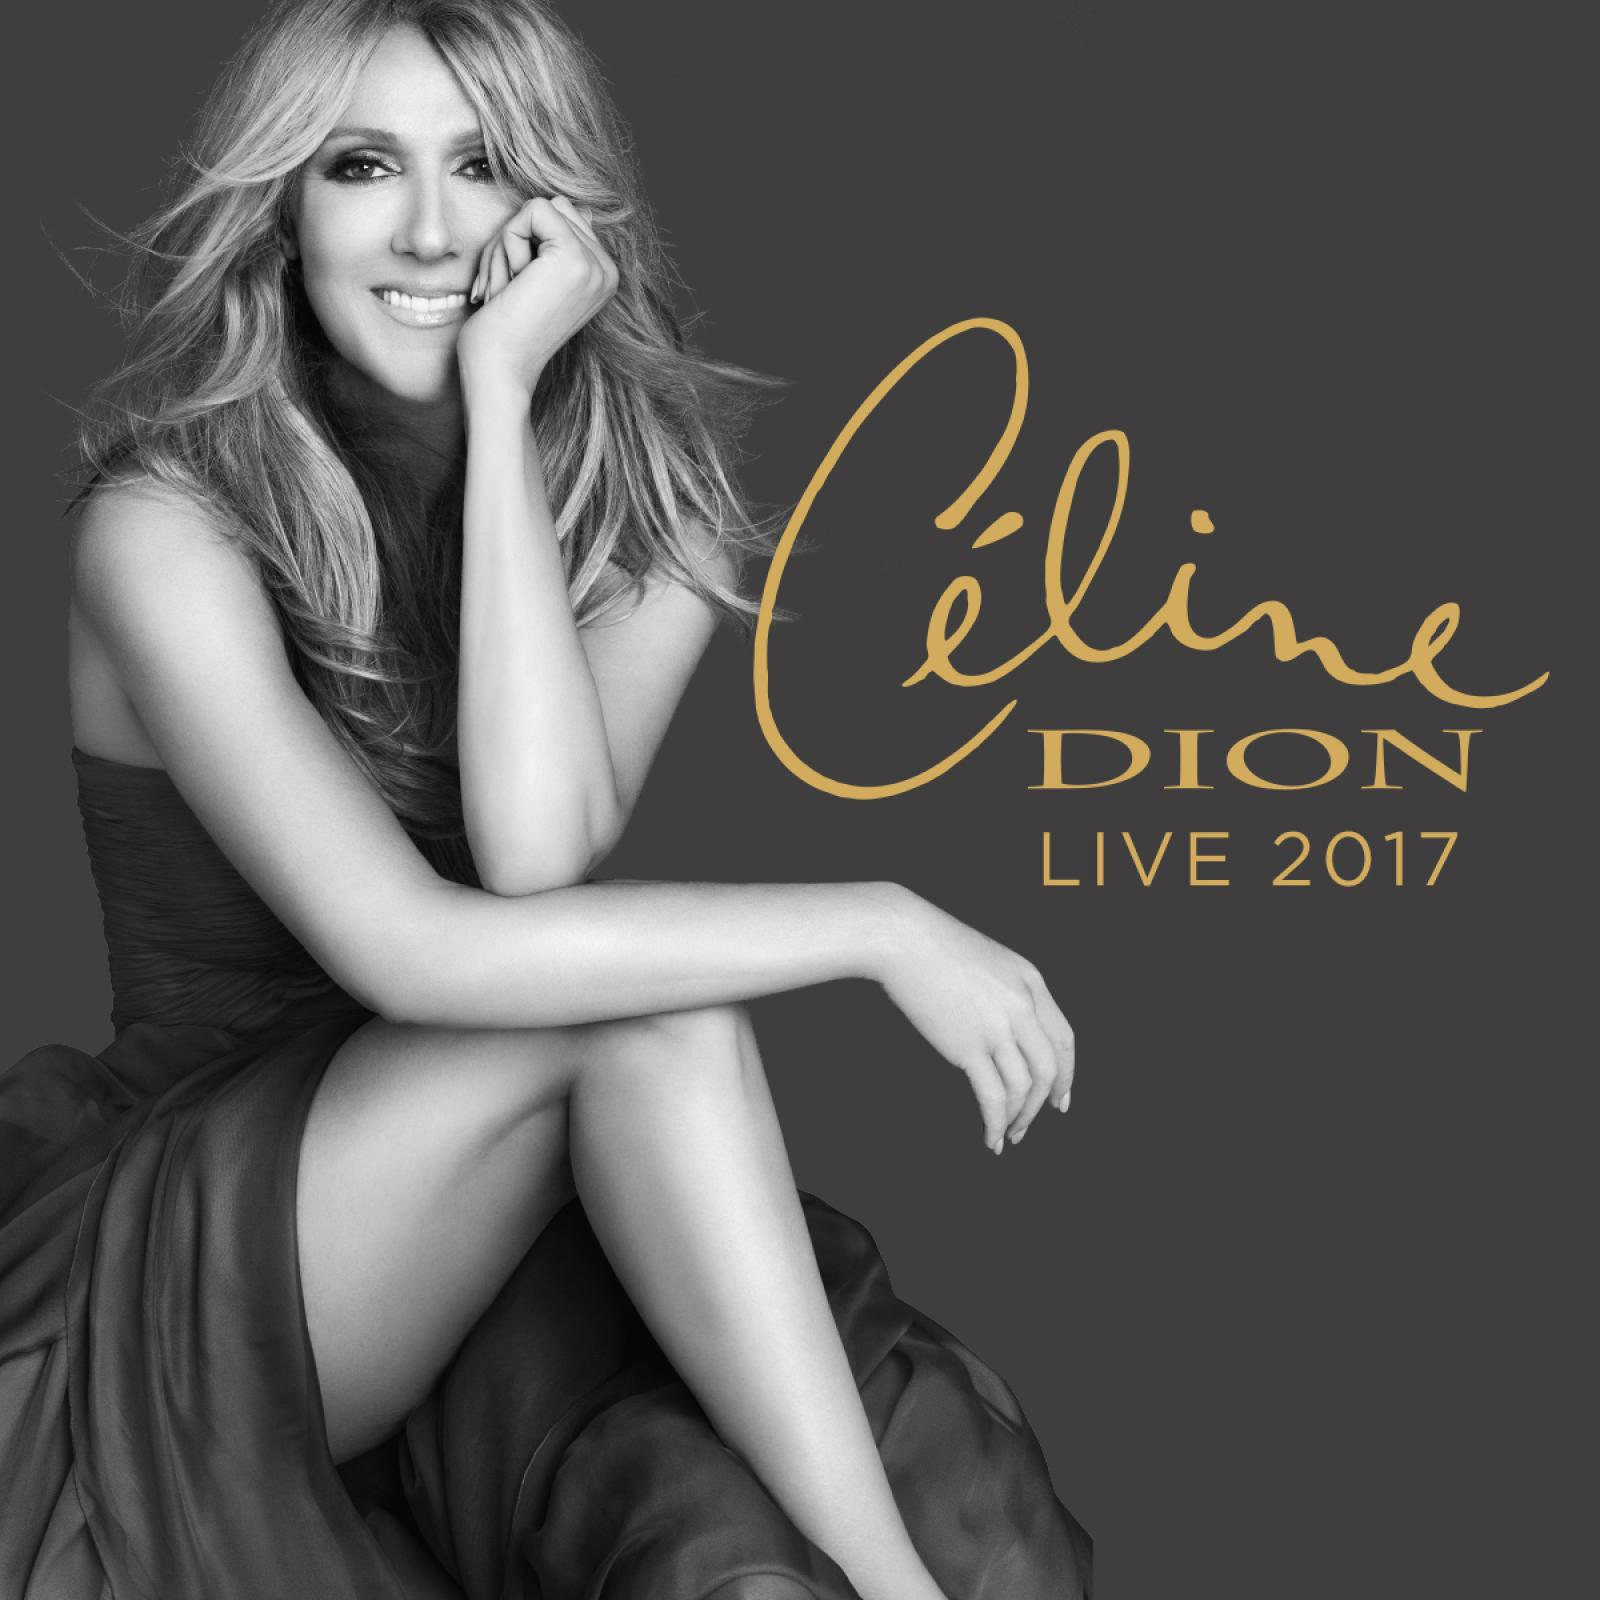 ENTERTAINMENT: Celine Dion's Life and Love Story